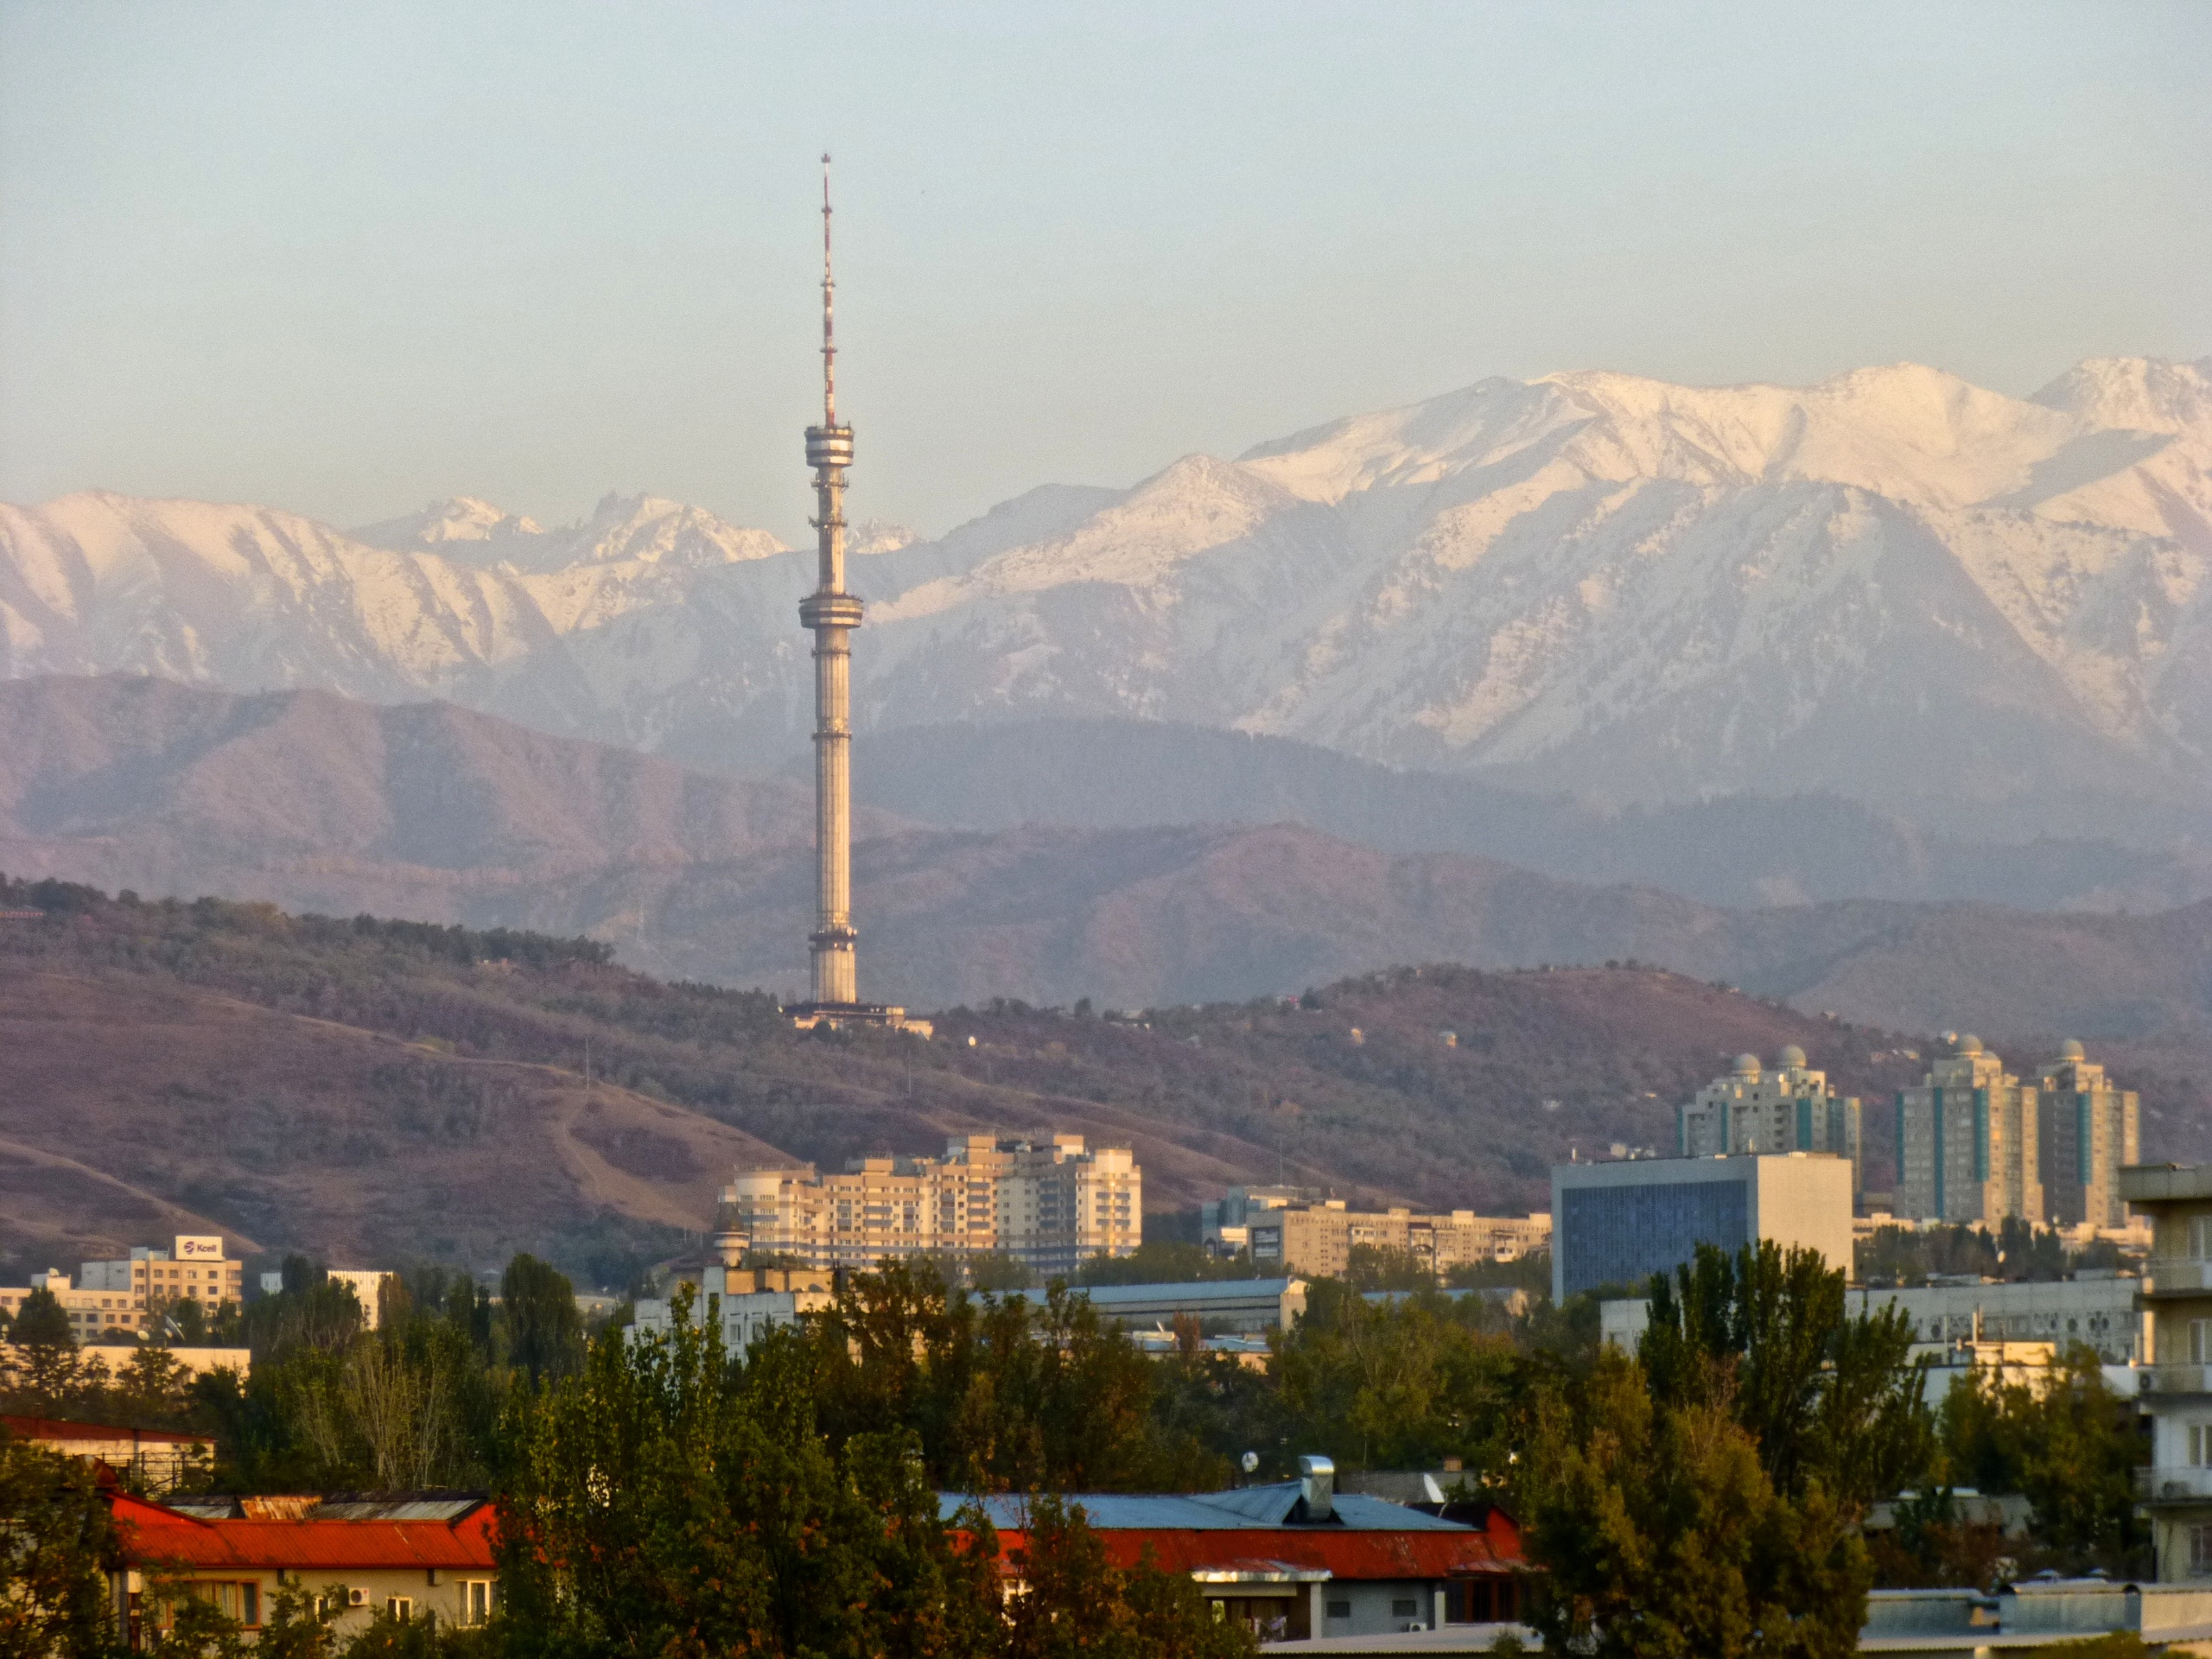 Television tower in Almaty, Kazakhstan (constructed 1983)